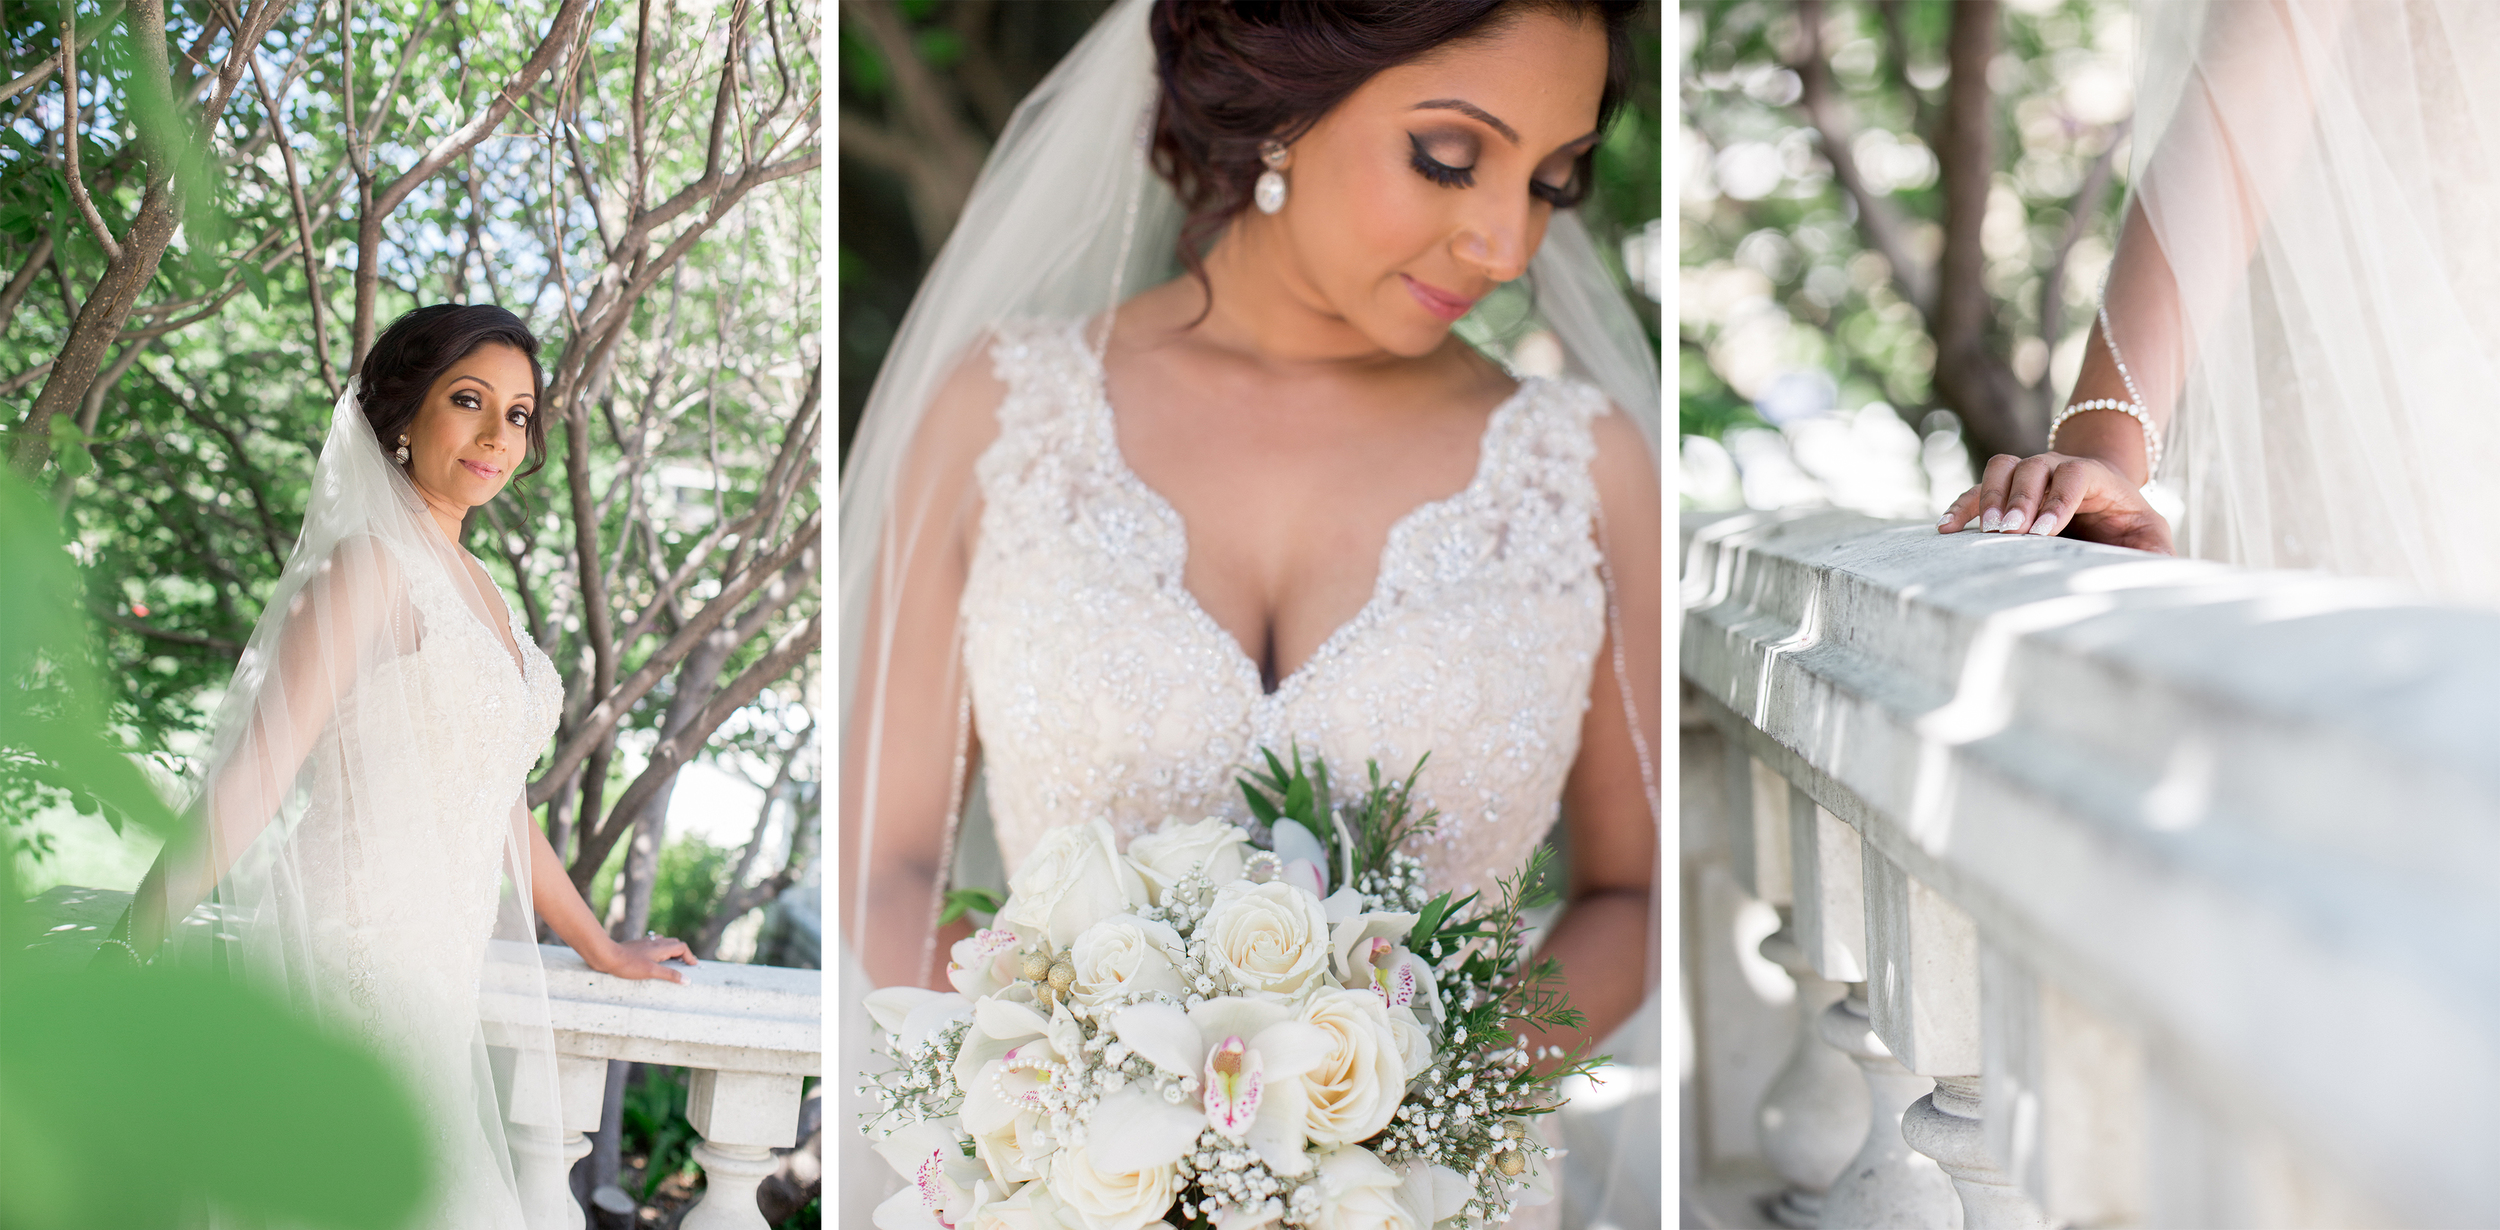 Elegant wedding photography in Calgary, Alberta